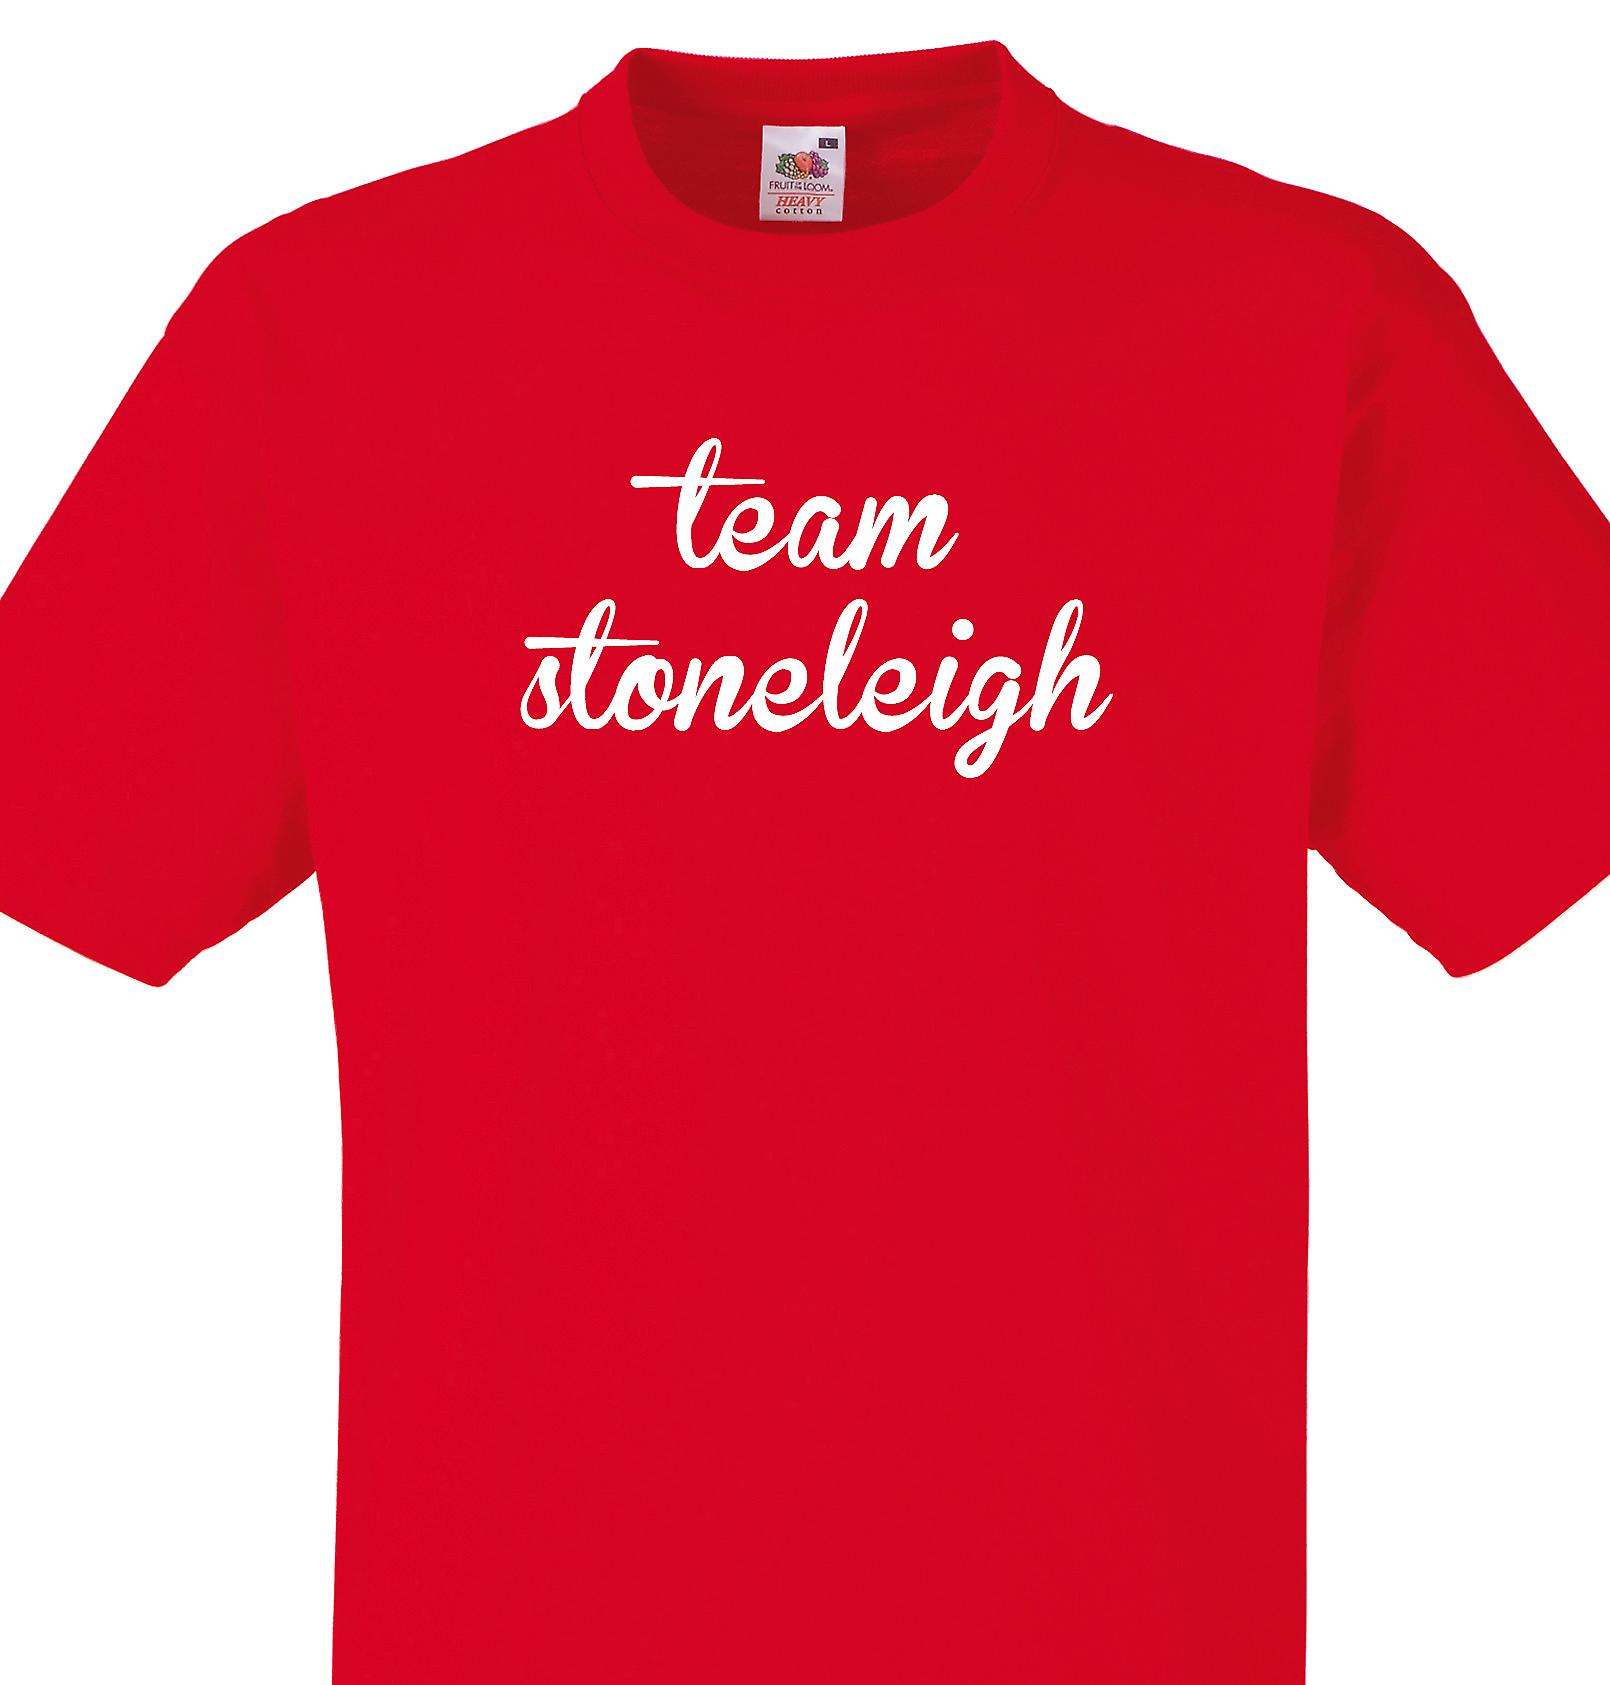 Team Stoneleigh Red T shirt